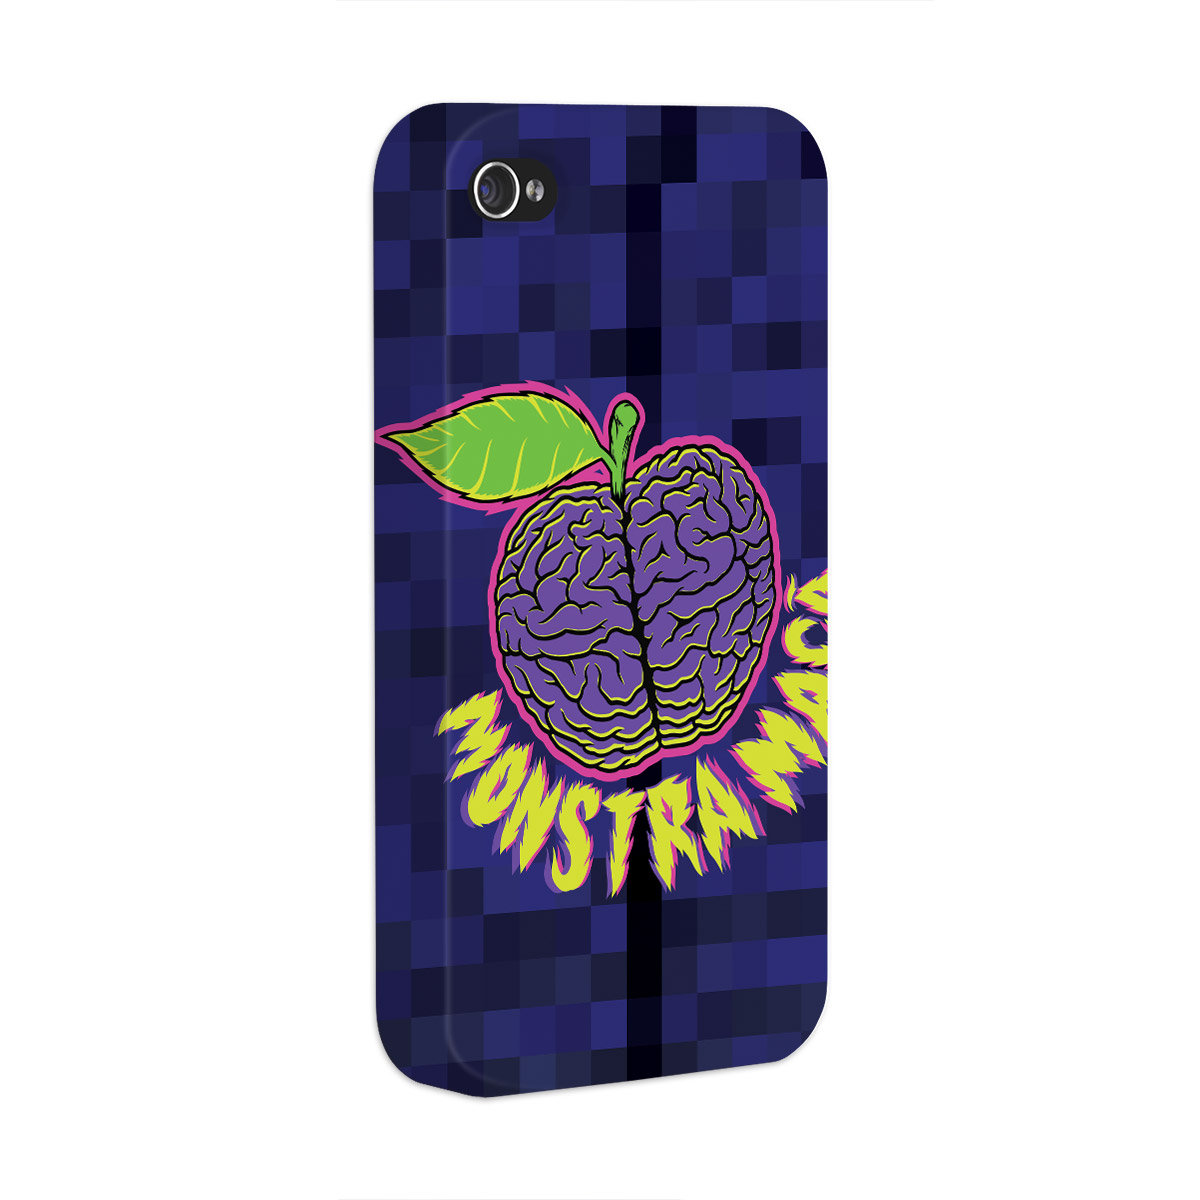 Capa para iPhone 4/4S Monstra Maçã Brains